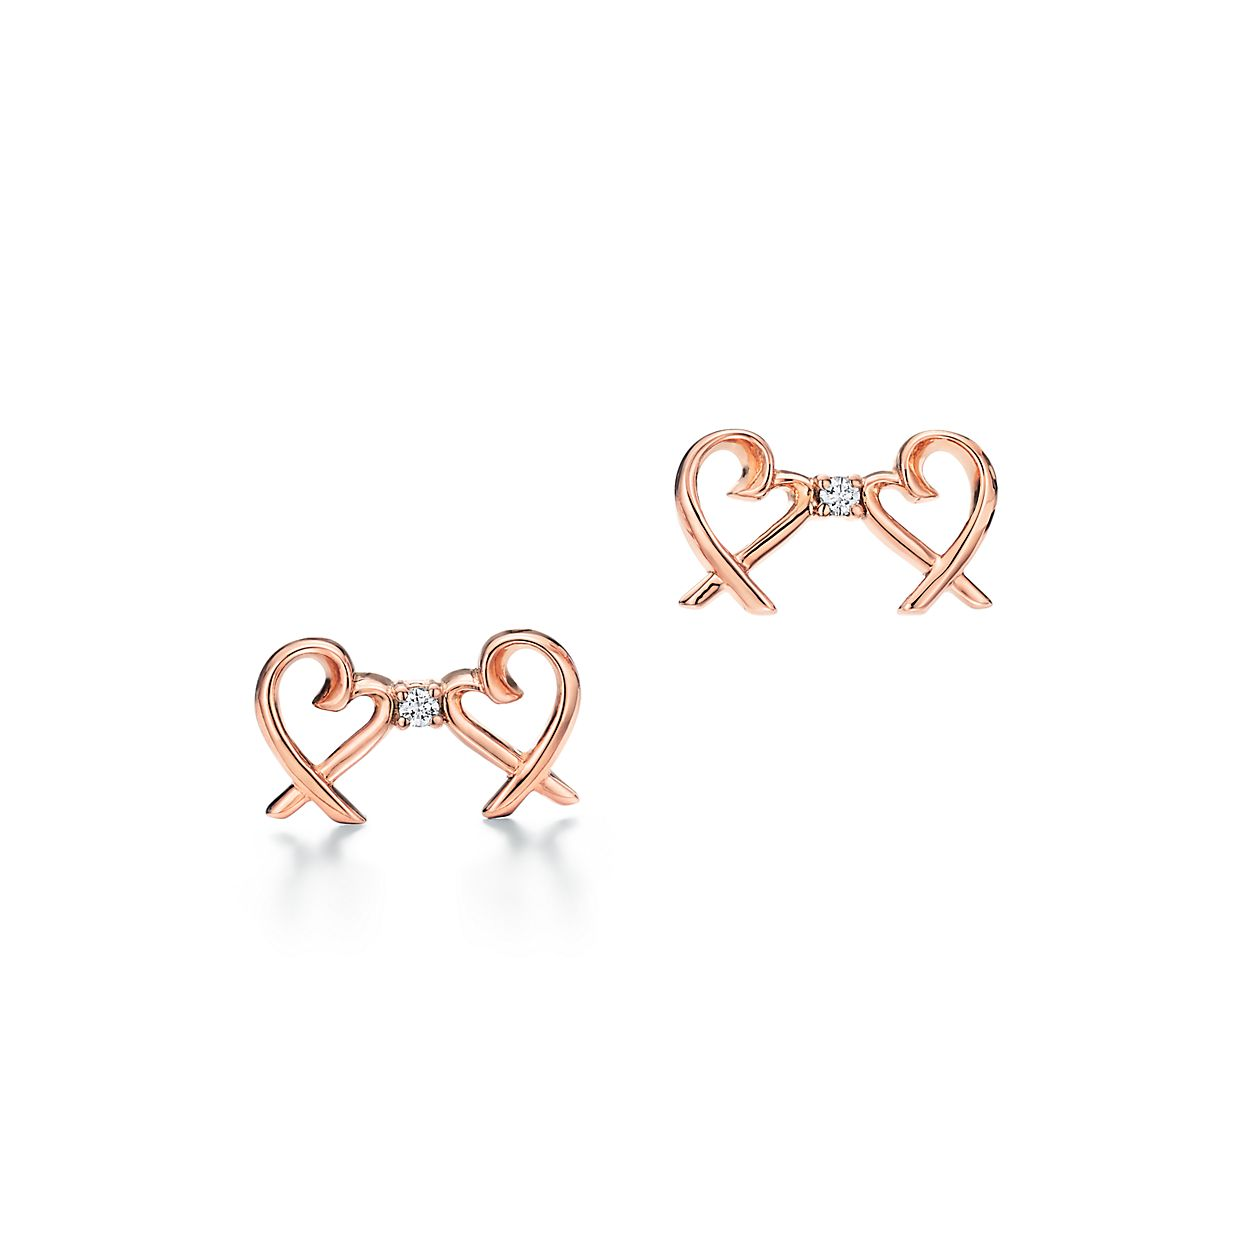 Paloma Picasso Double Loving Heart Earrings In 18k Rose Gold With